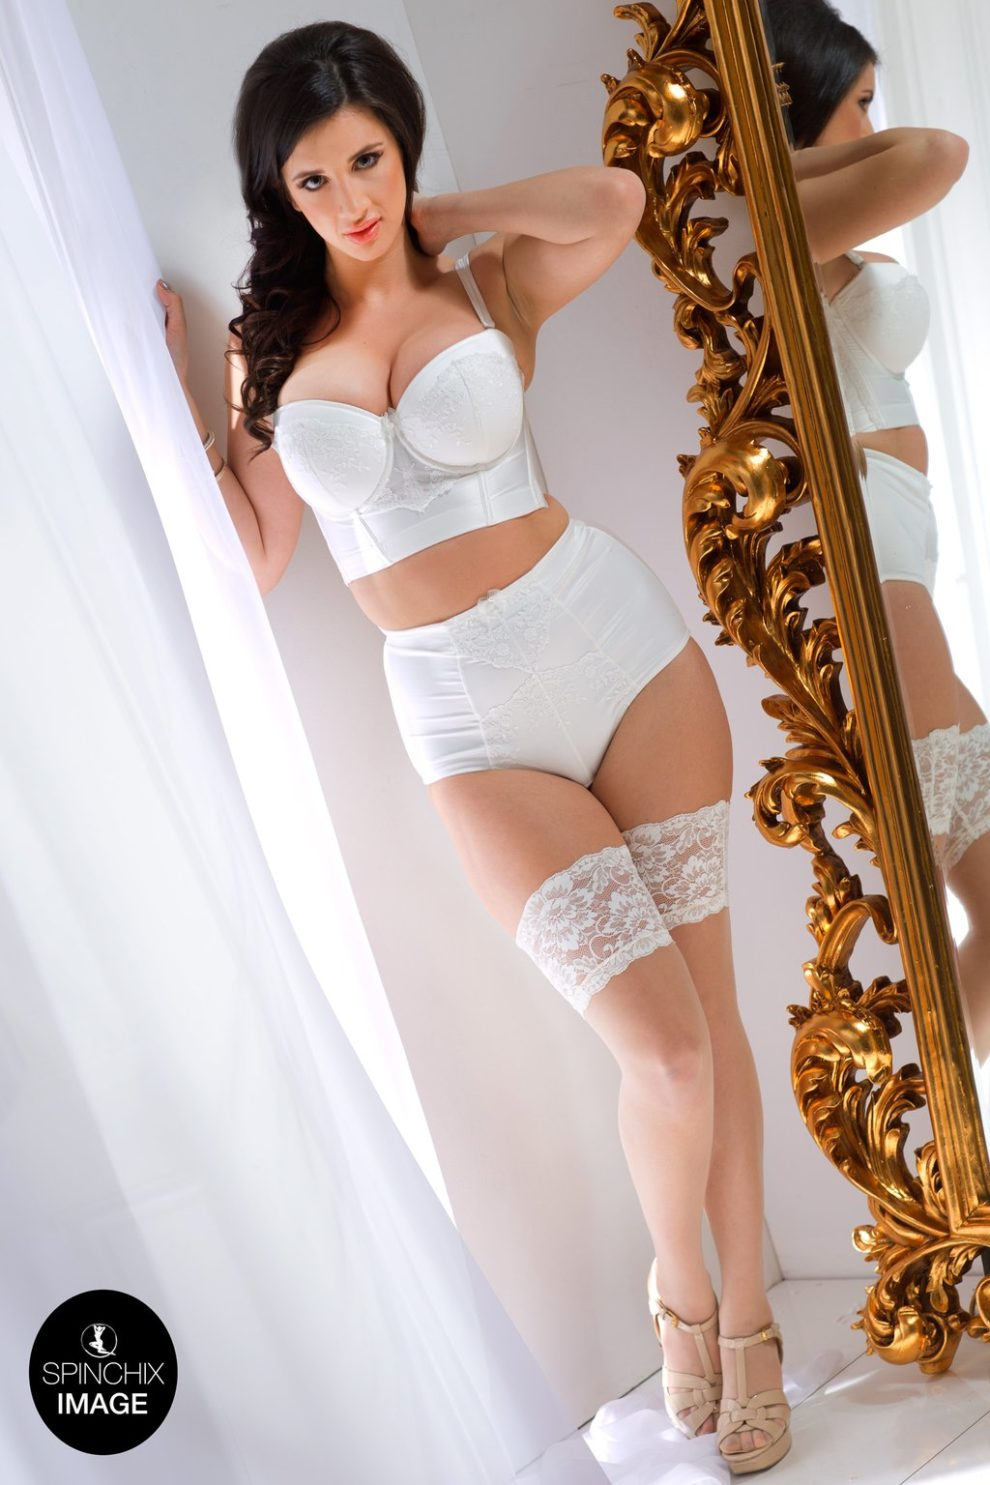 White lingerie (XPost from r/CaraRuby)